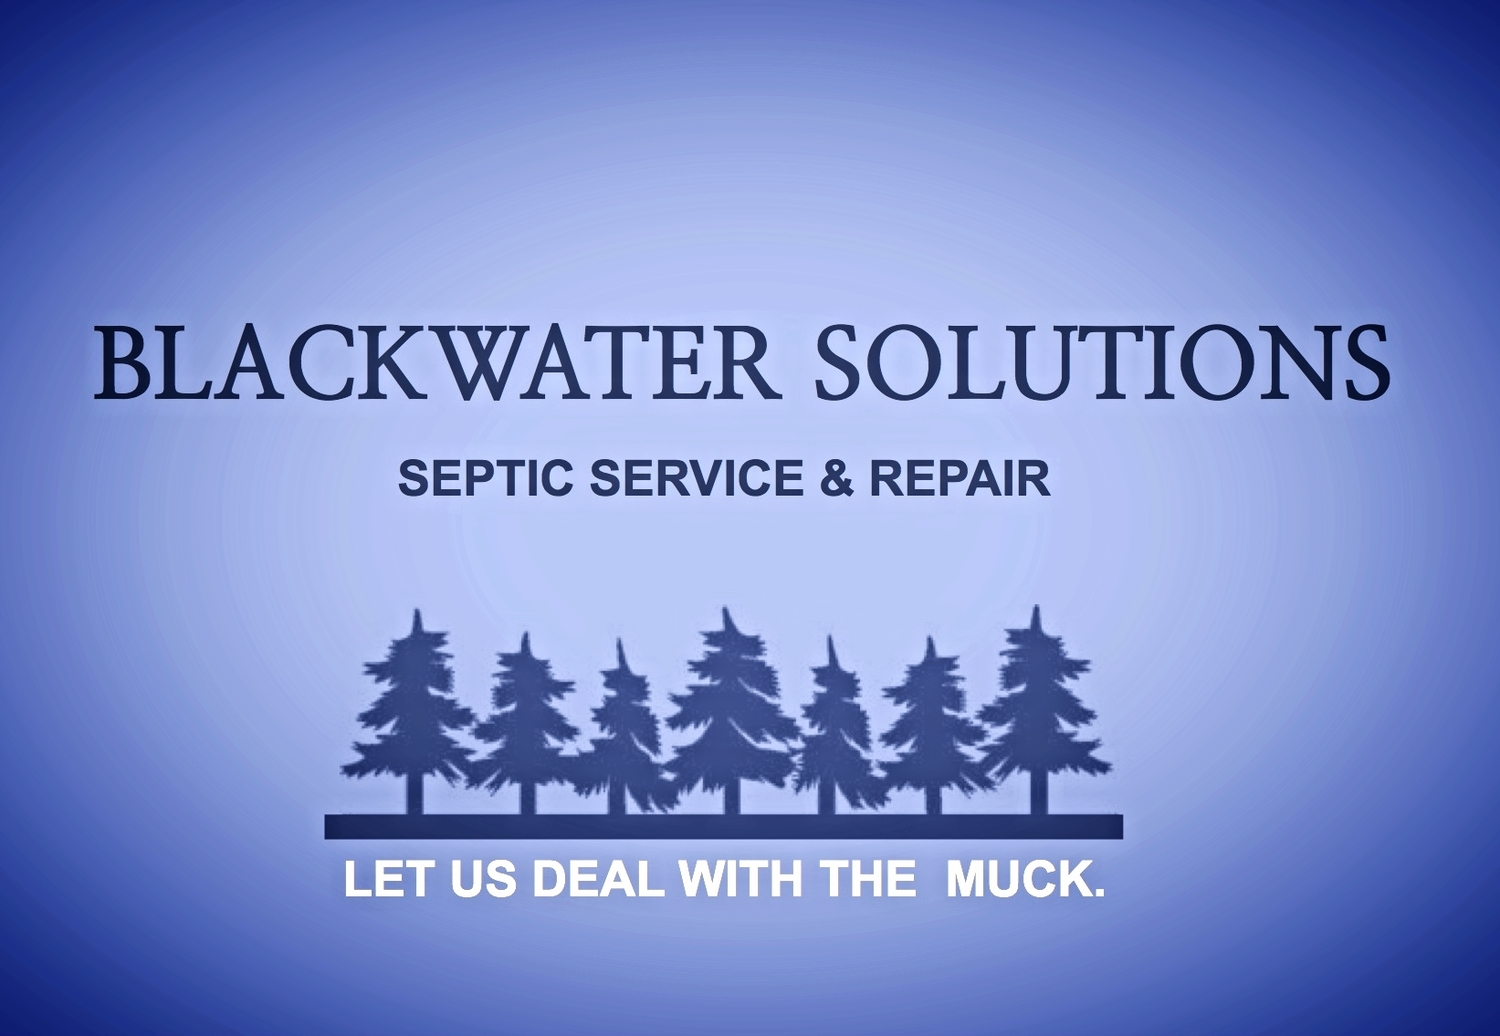 Blackwater Solutions